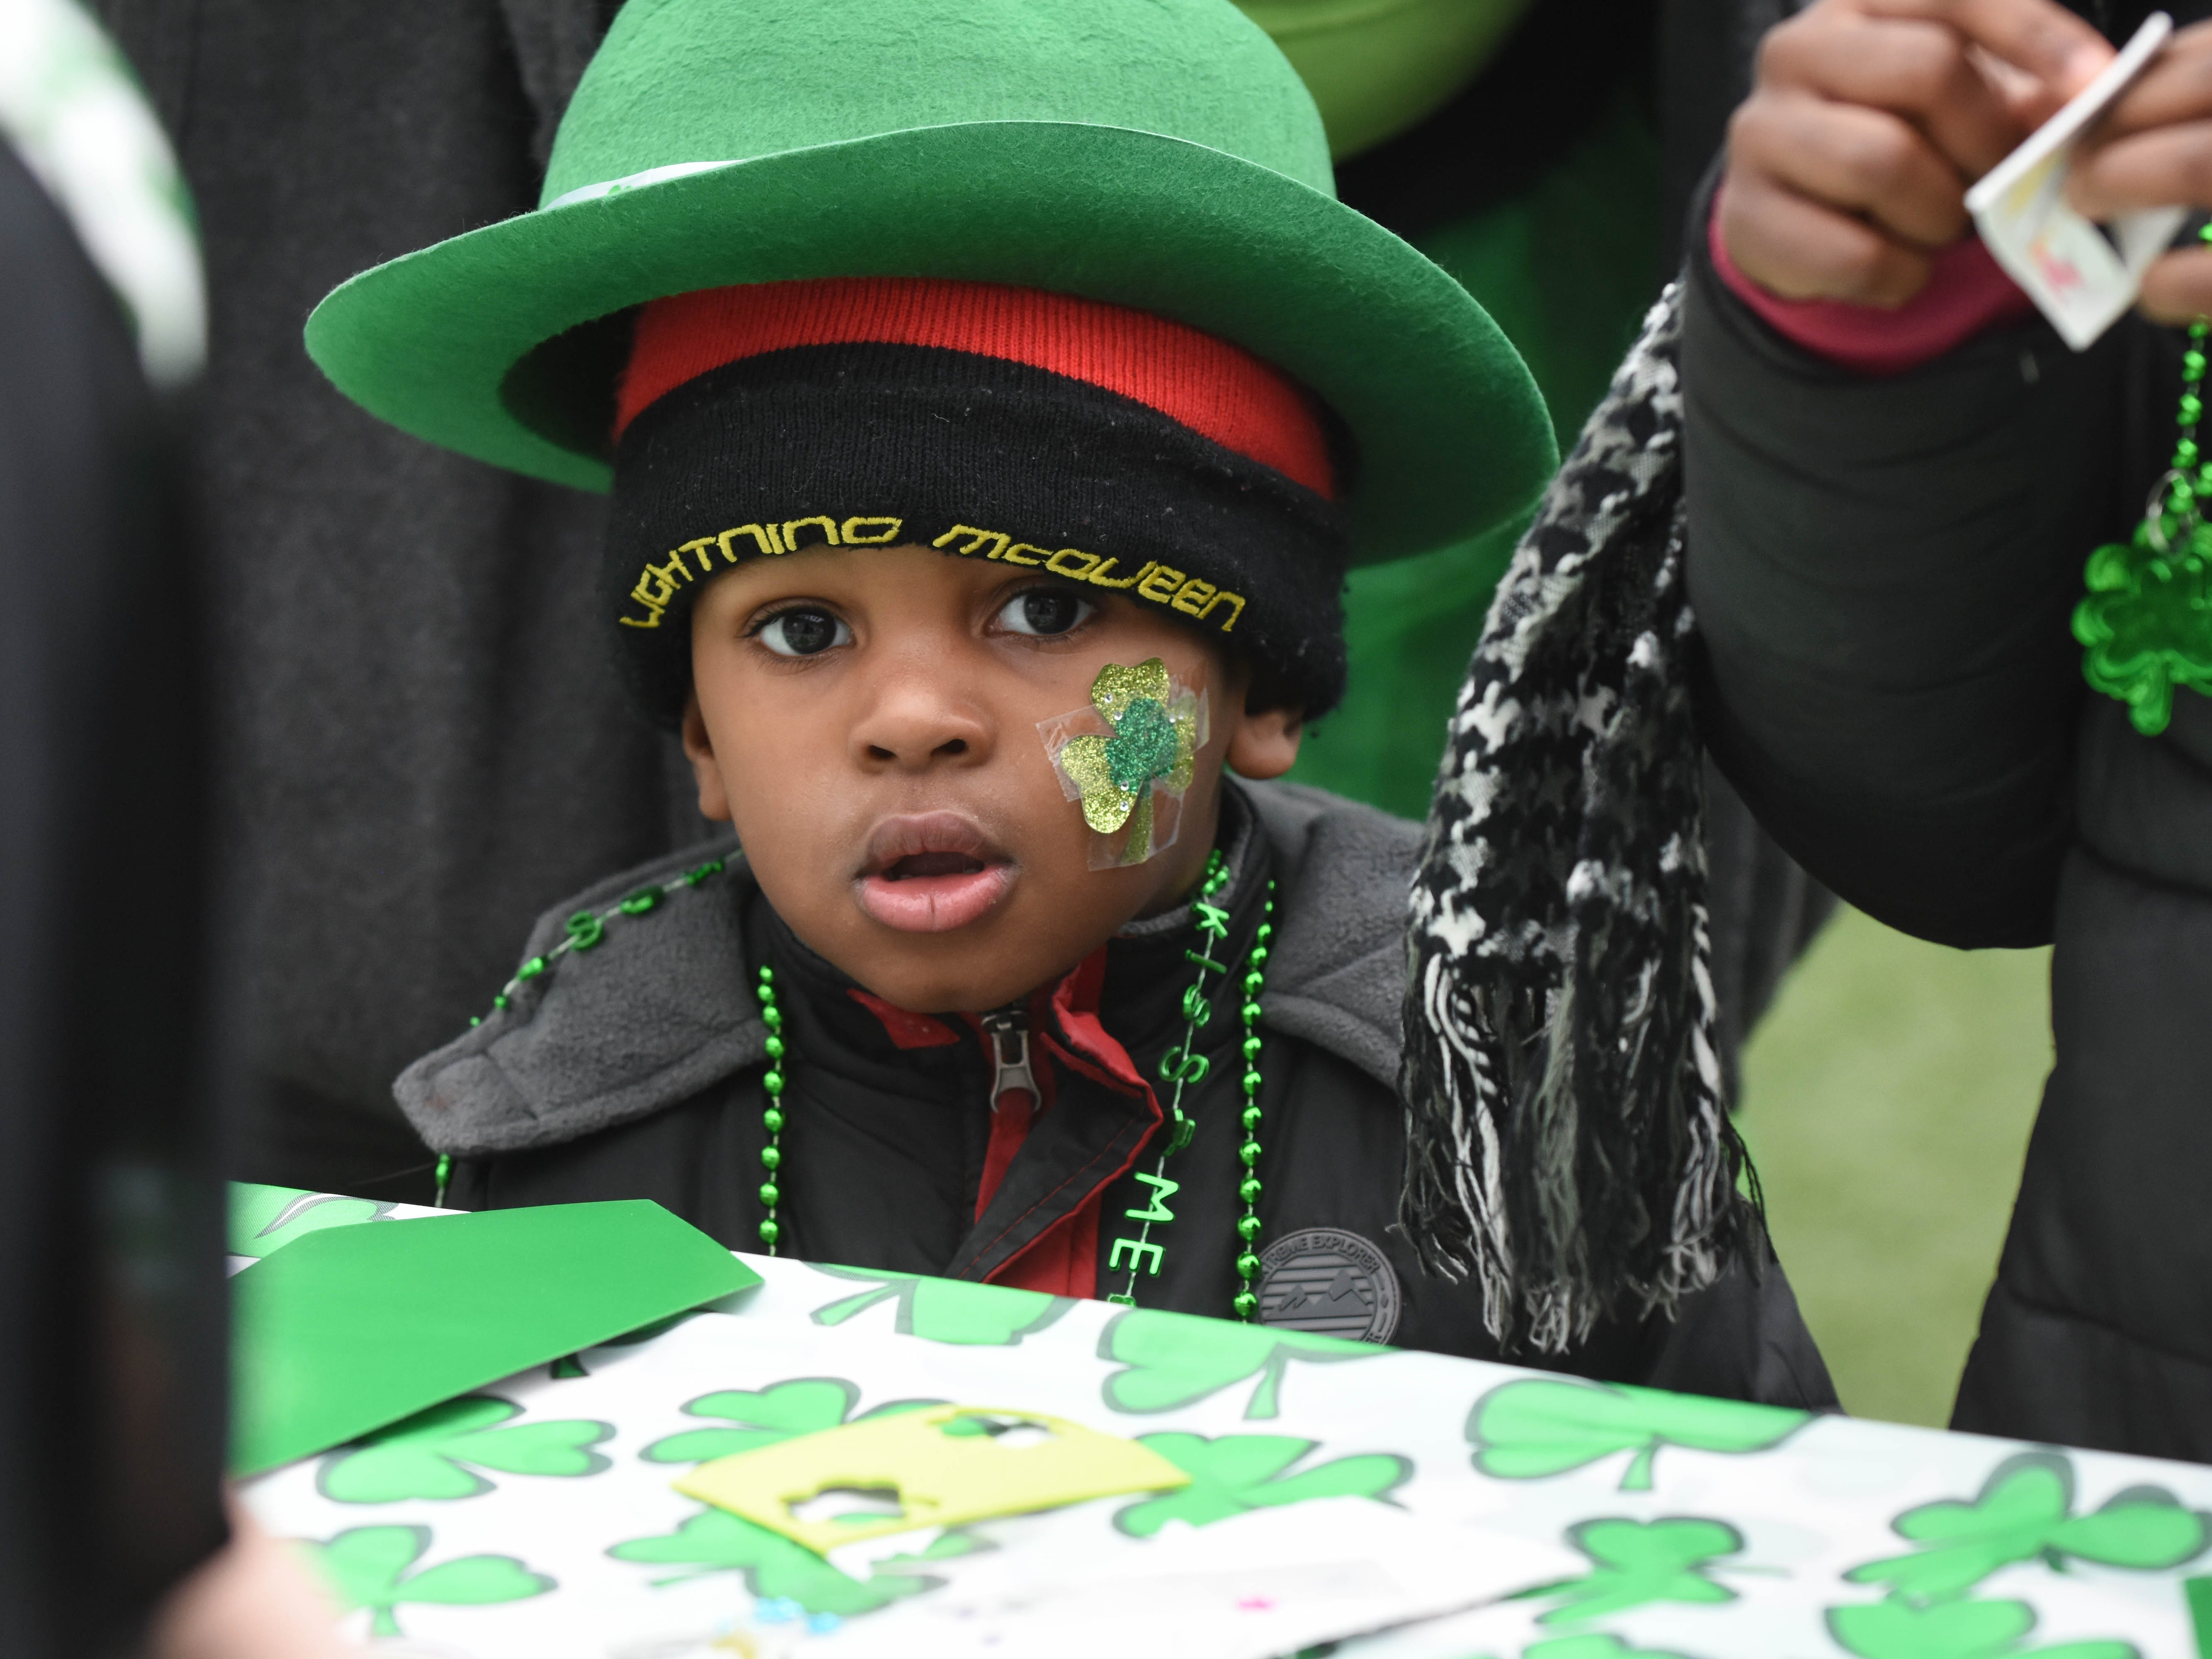 LJ Rhodes dons a green hat and necklace during the St. Patrick's Day Party at Beacon Park.